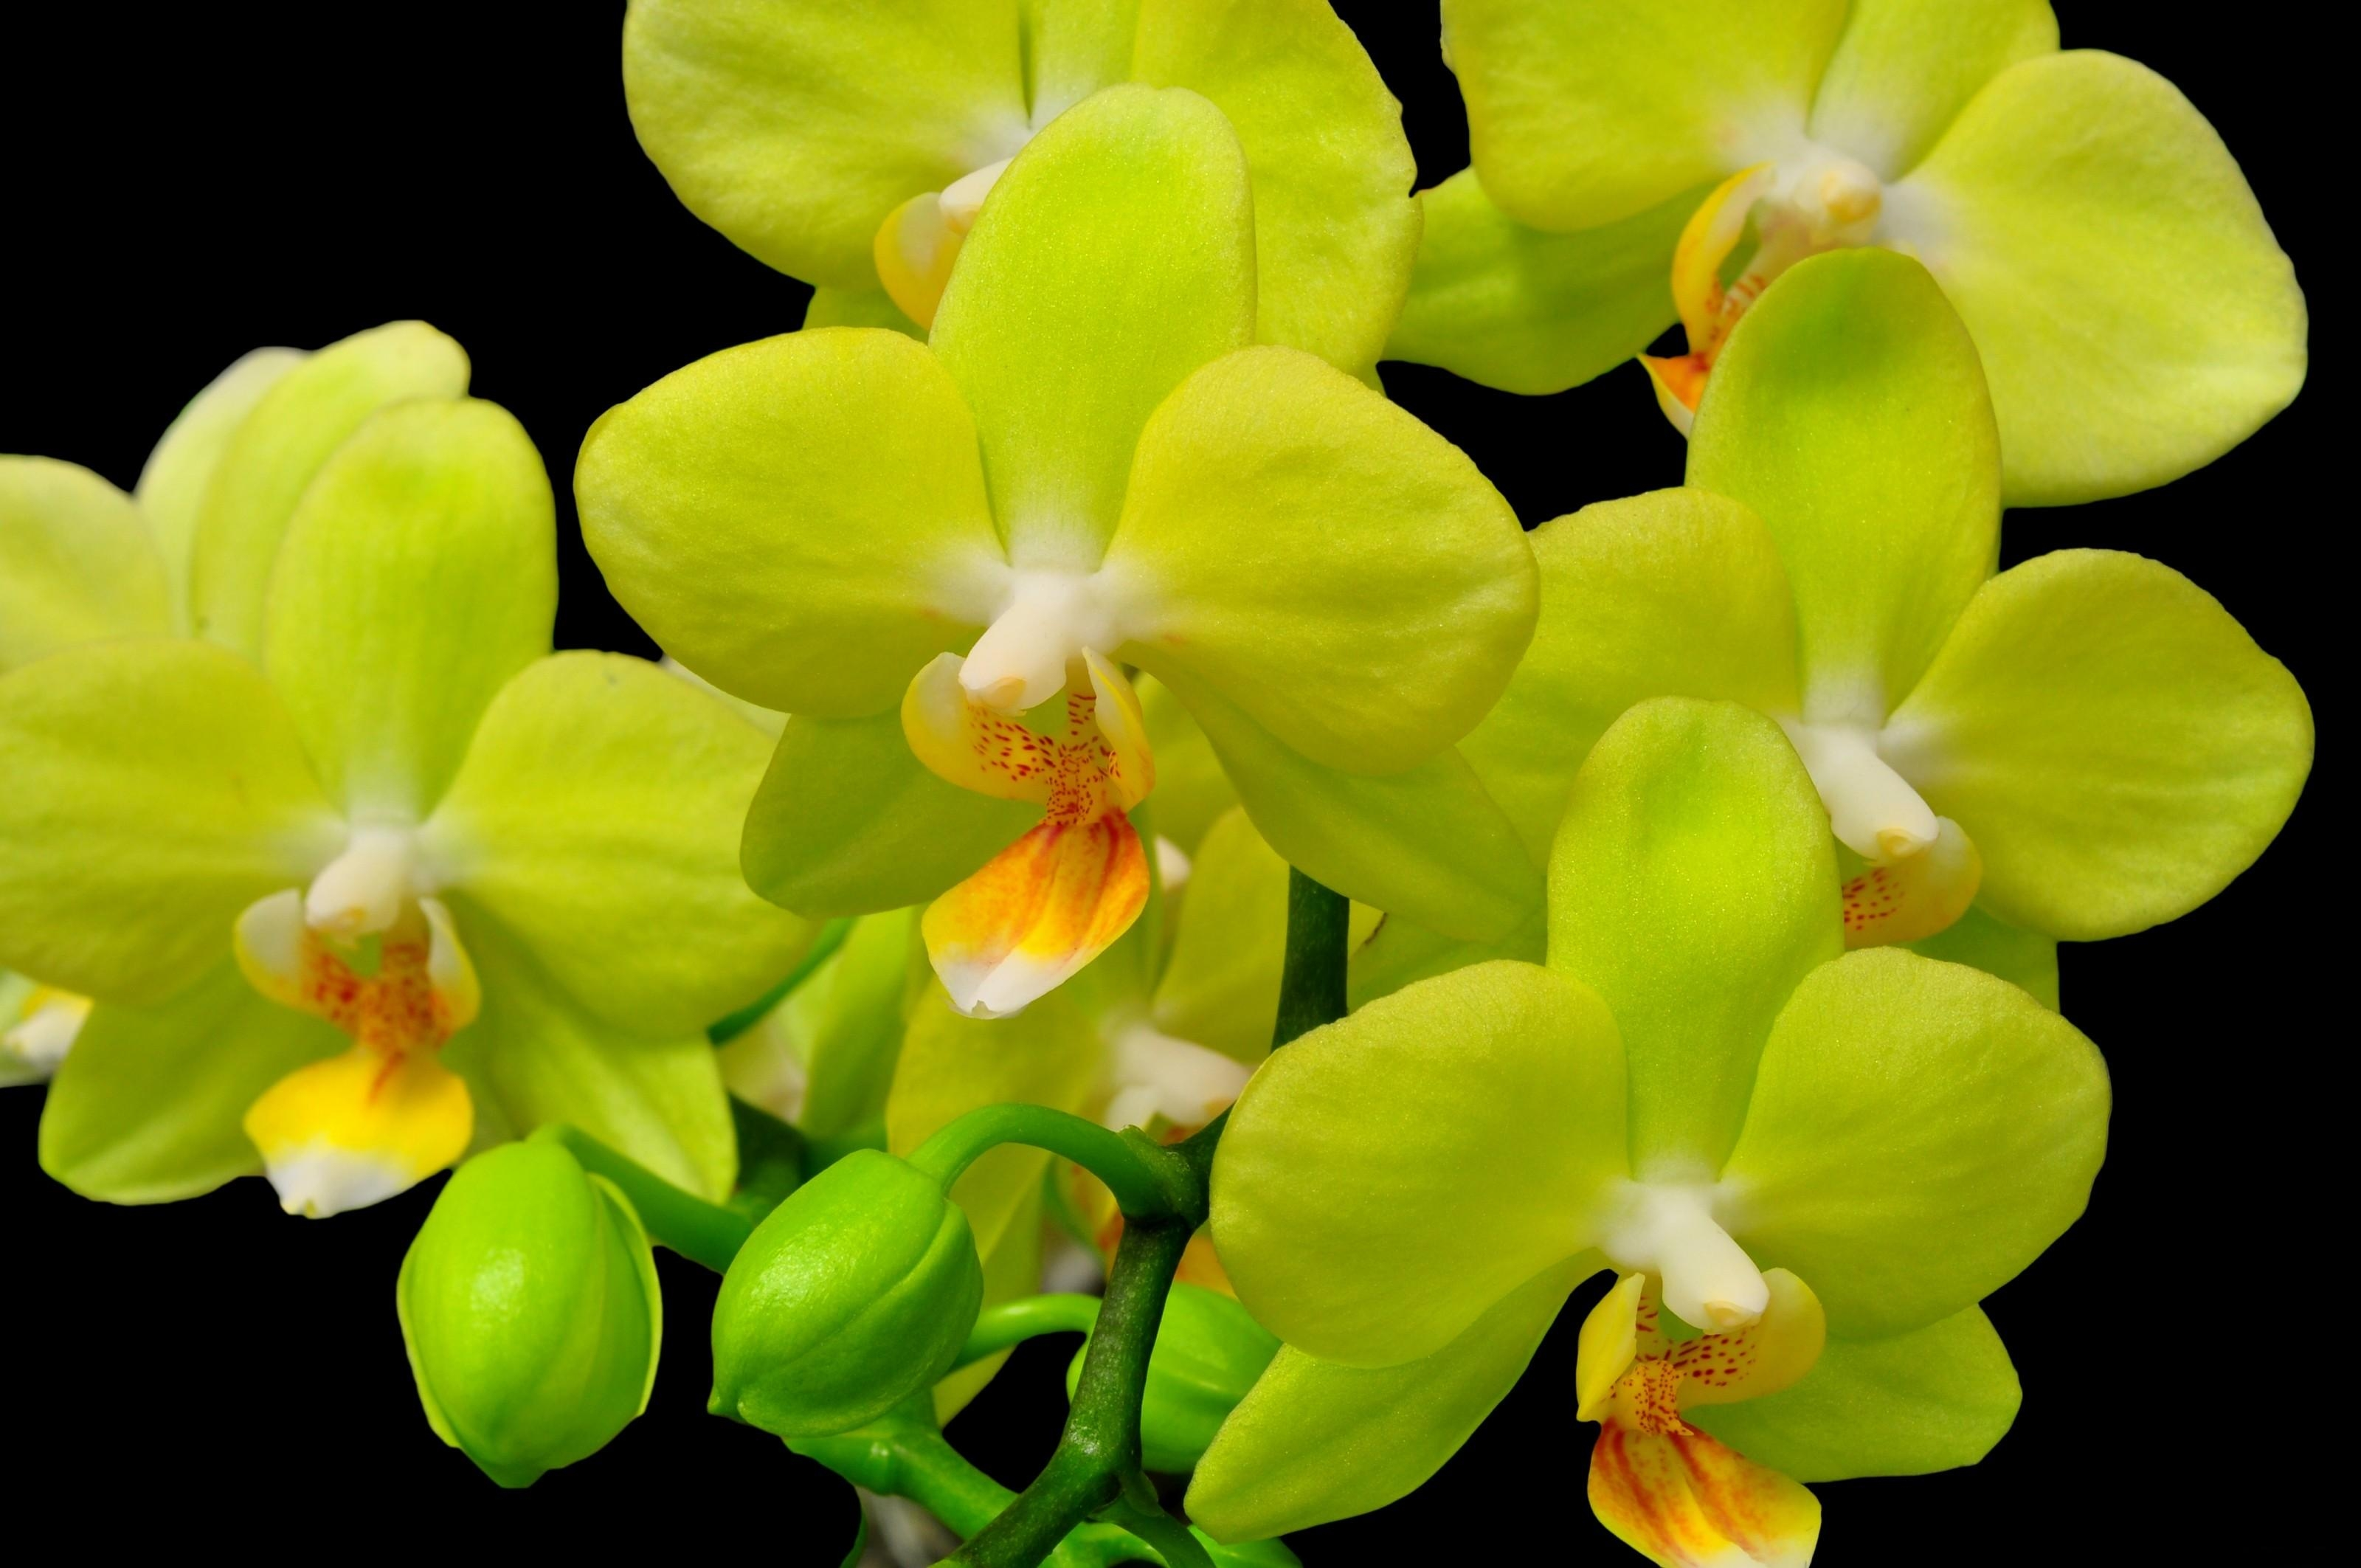 87723 download wallpaper Flowers, Orchid, Flower, Close-Up, Branch, Black Background screensavers and pictures for free